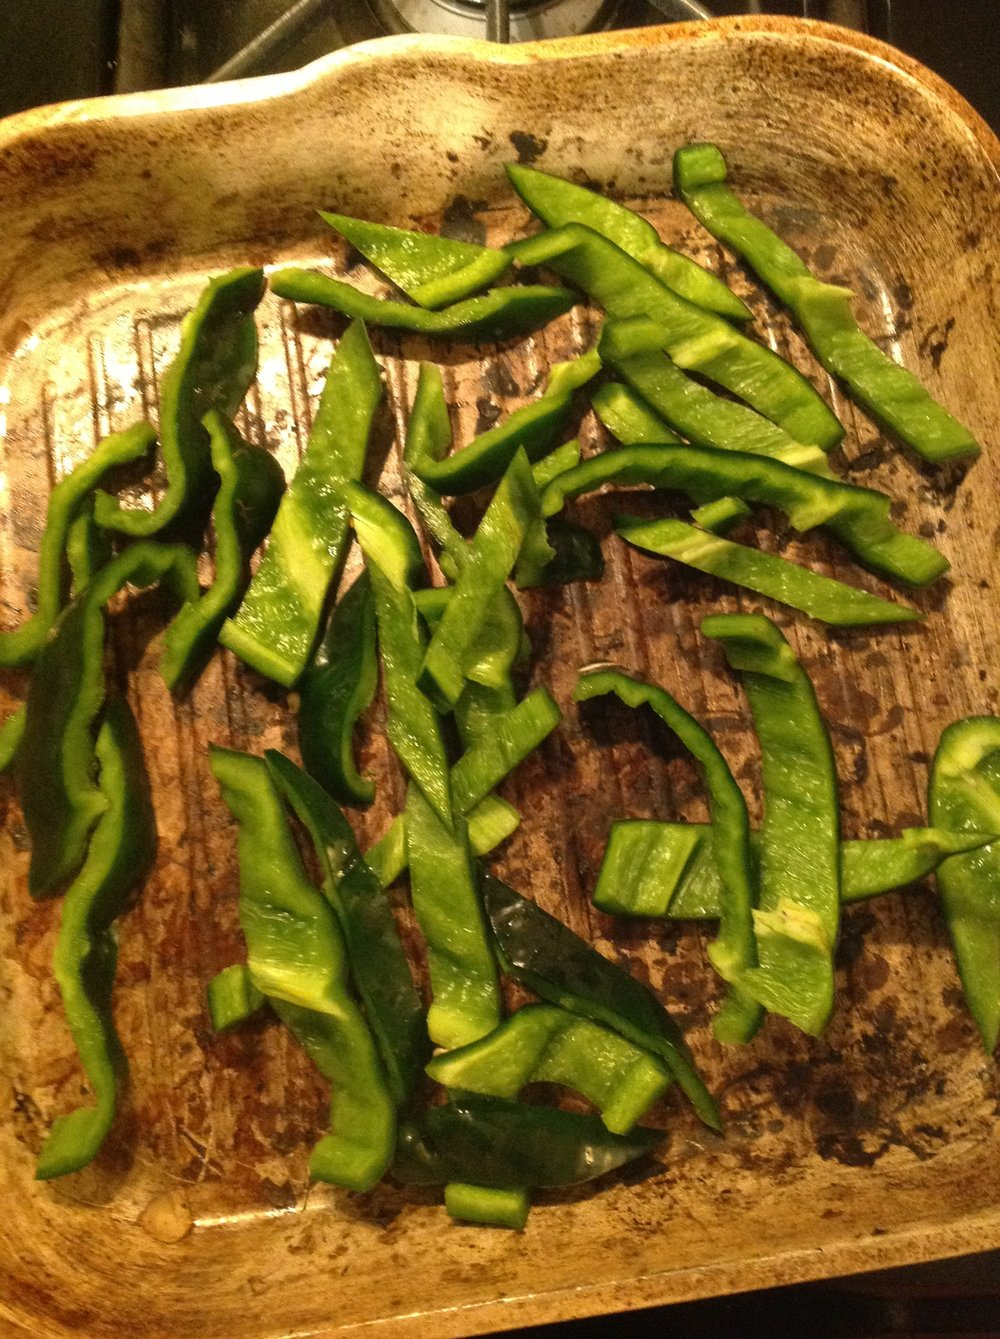 Chef's Tip - Poblano peppers are spicier than your regular bell peppers.  For milder spice, substitute with regular green, red, or yellow bell peppers